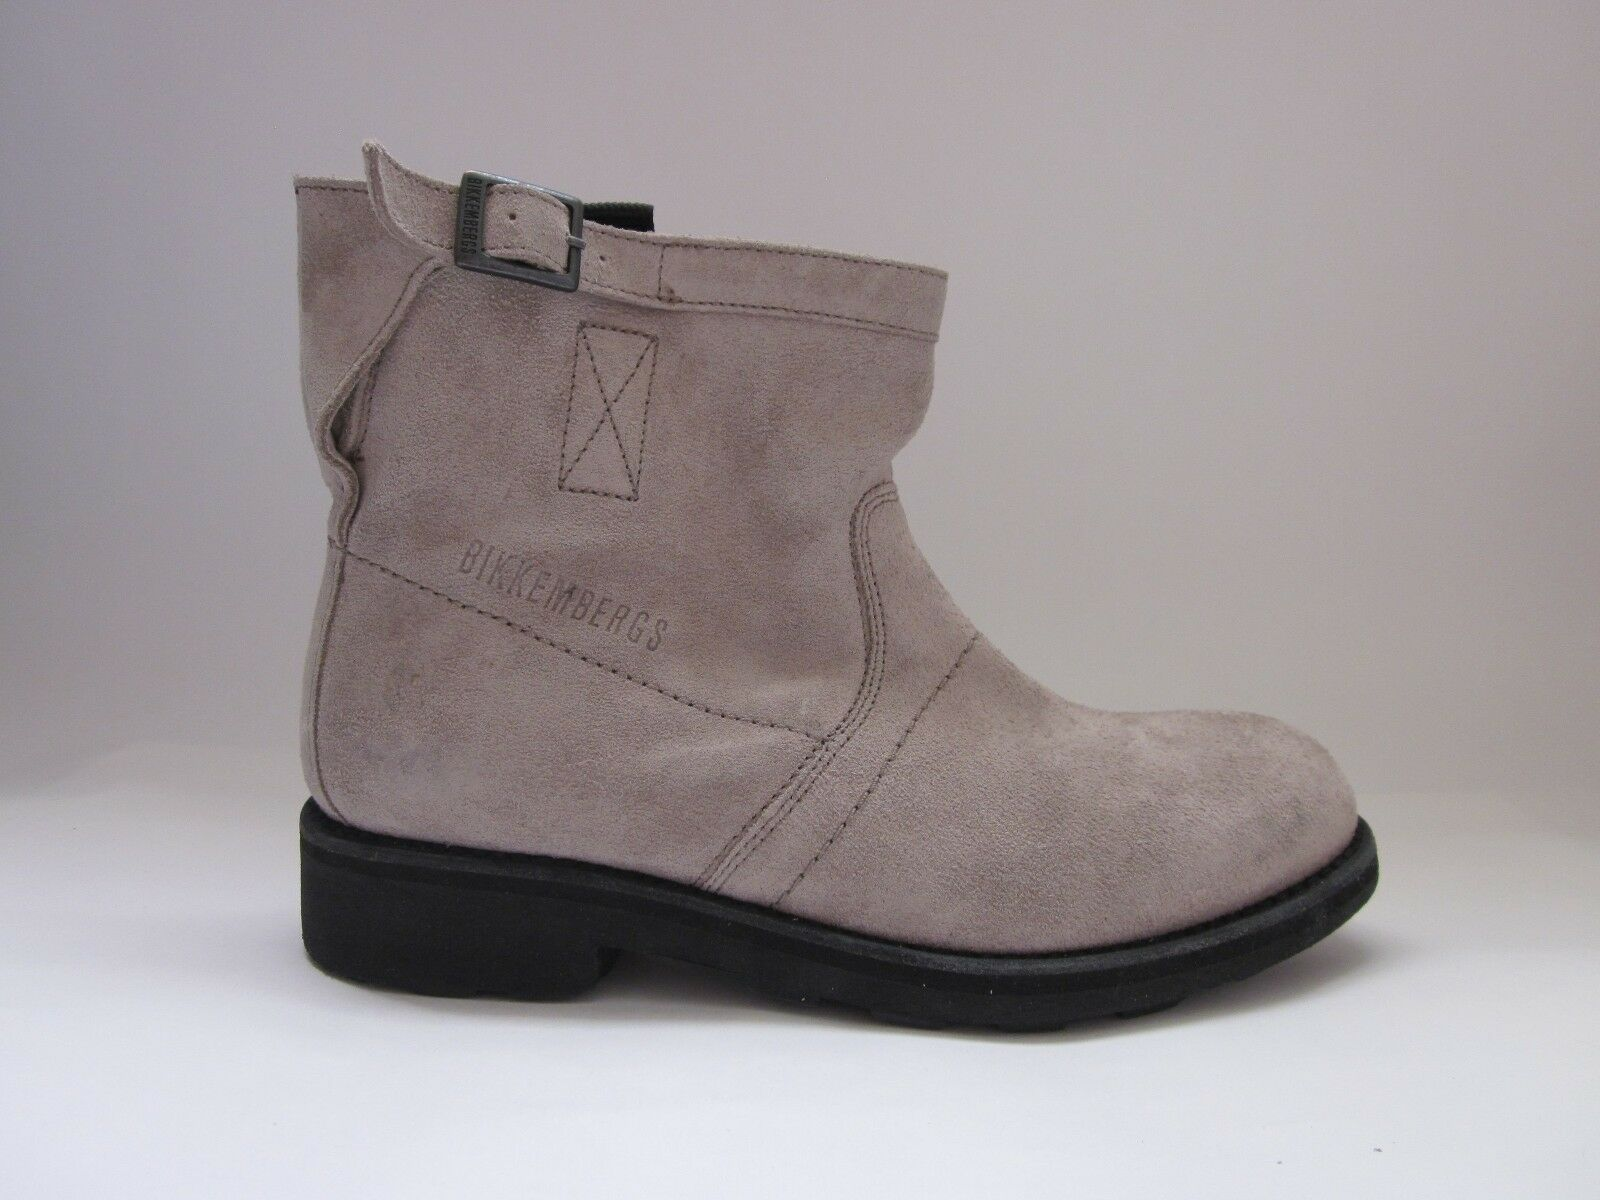 RAG BONE BLACK SIZE BOOTS ANKLE WOMENS LEATHER SIZE BLACK 36 a17896